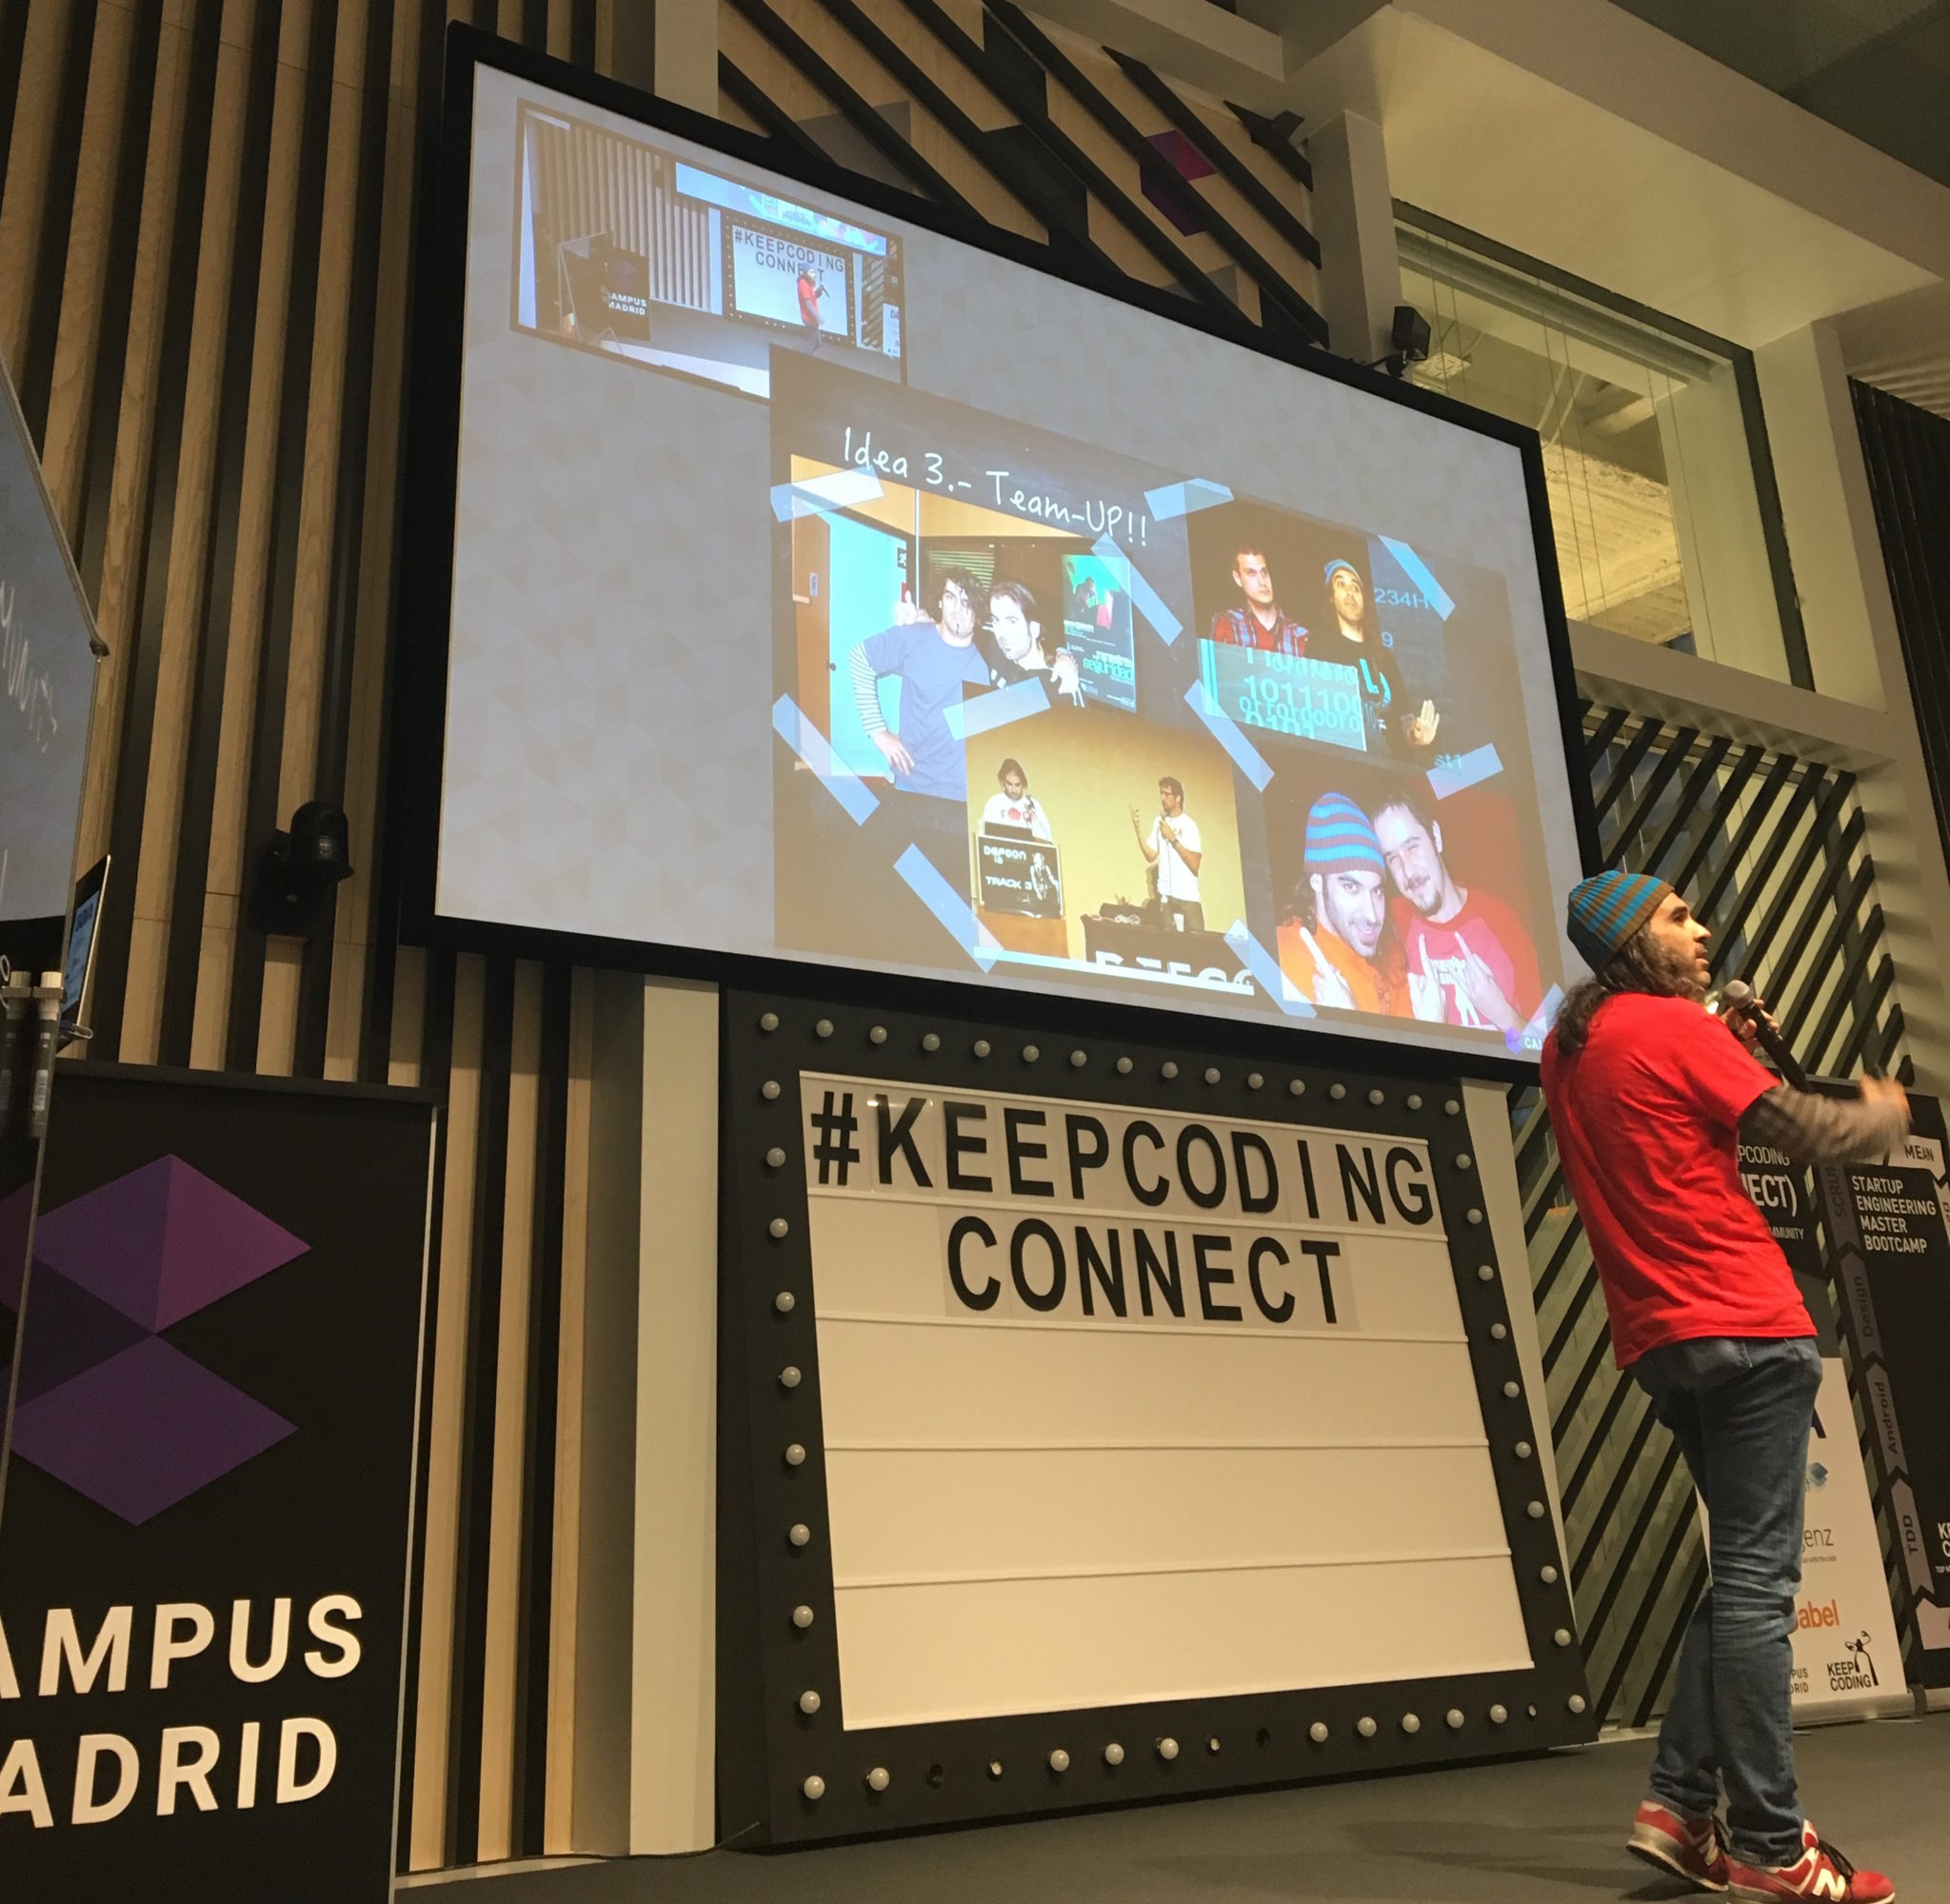 keepcoding-chema-alonso